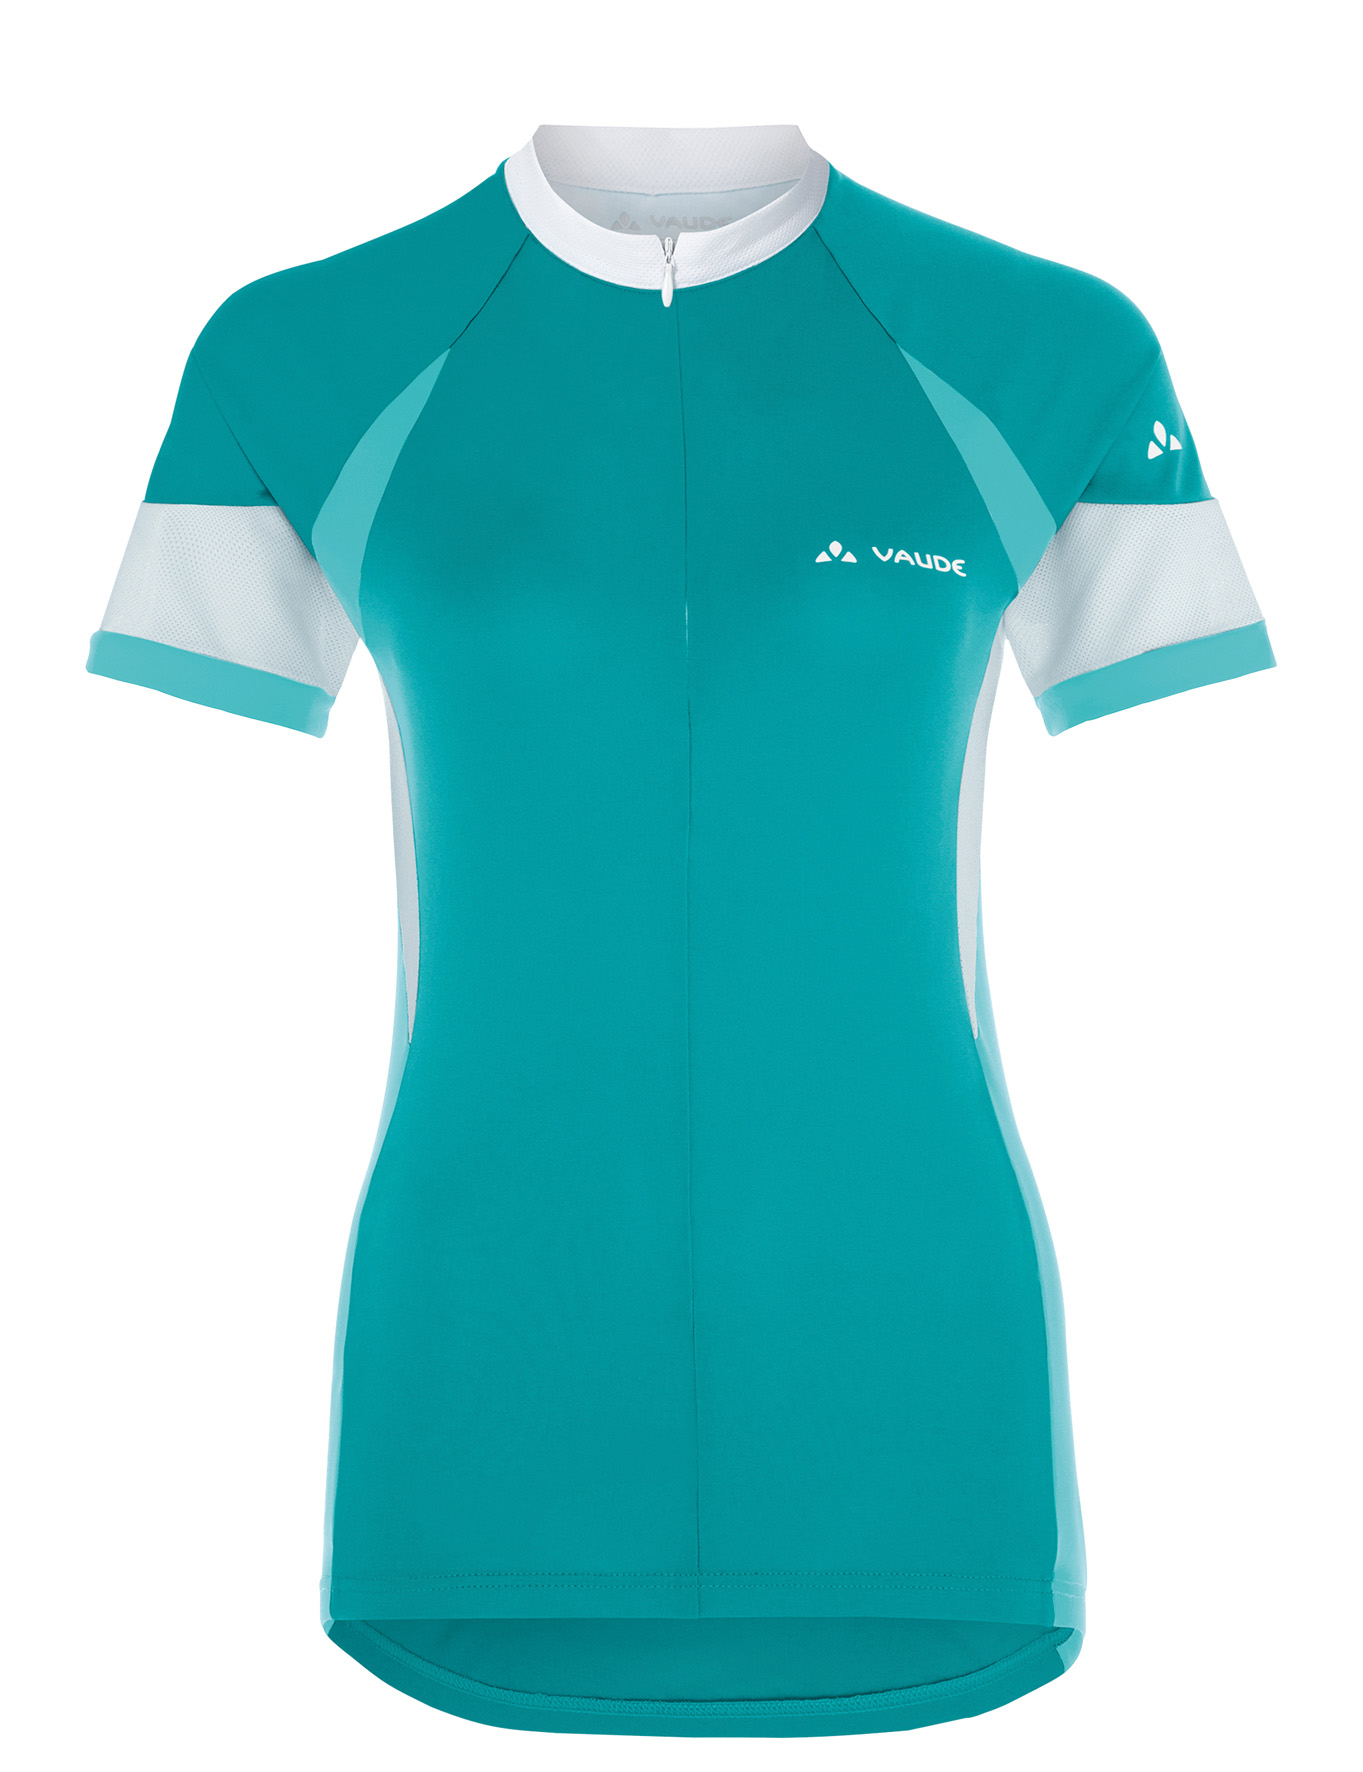 VAUDE Women´s Advanced Tricot reef Größe 34 - schneider-sports